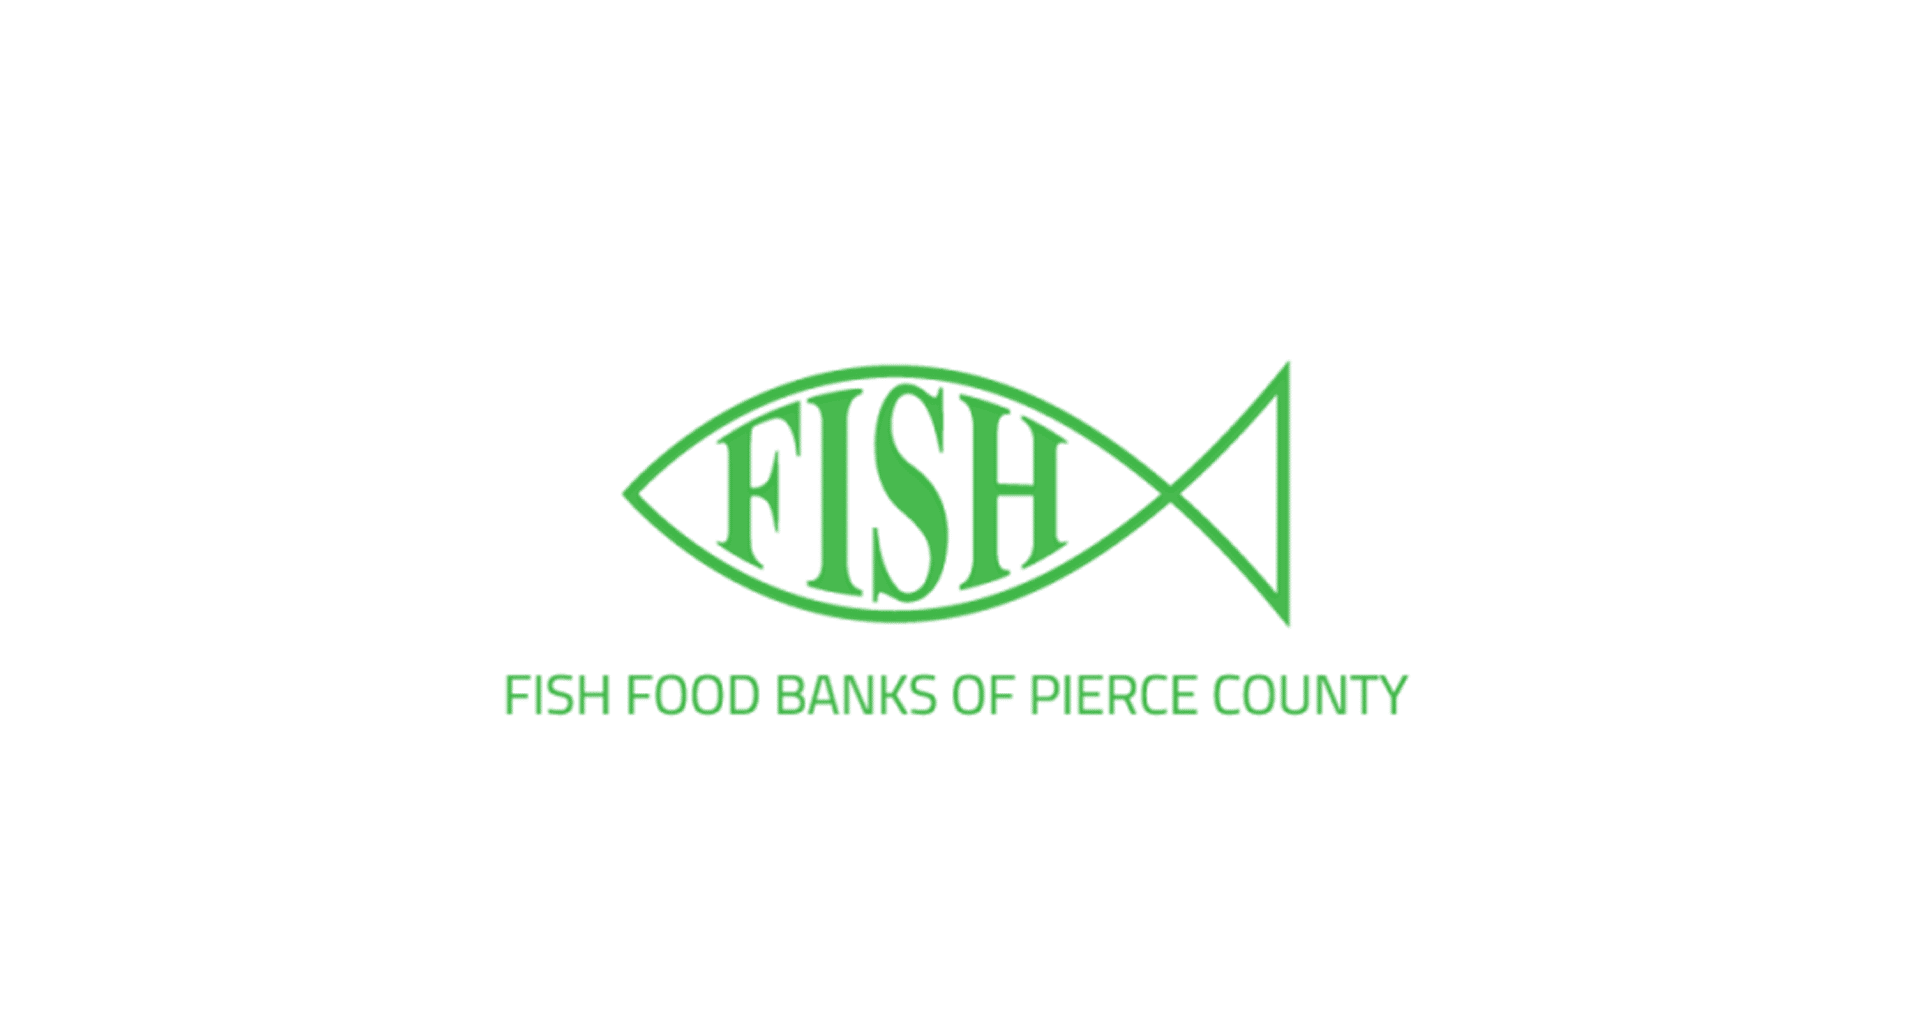 FISH Food Banks